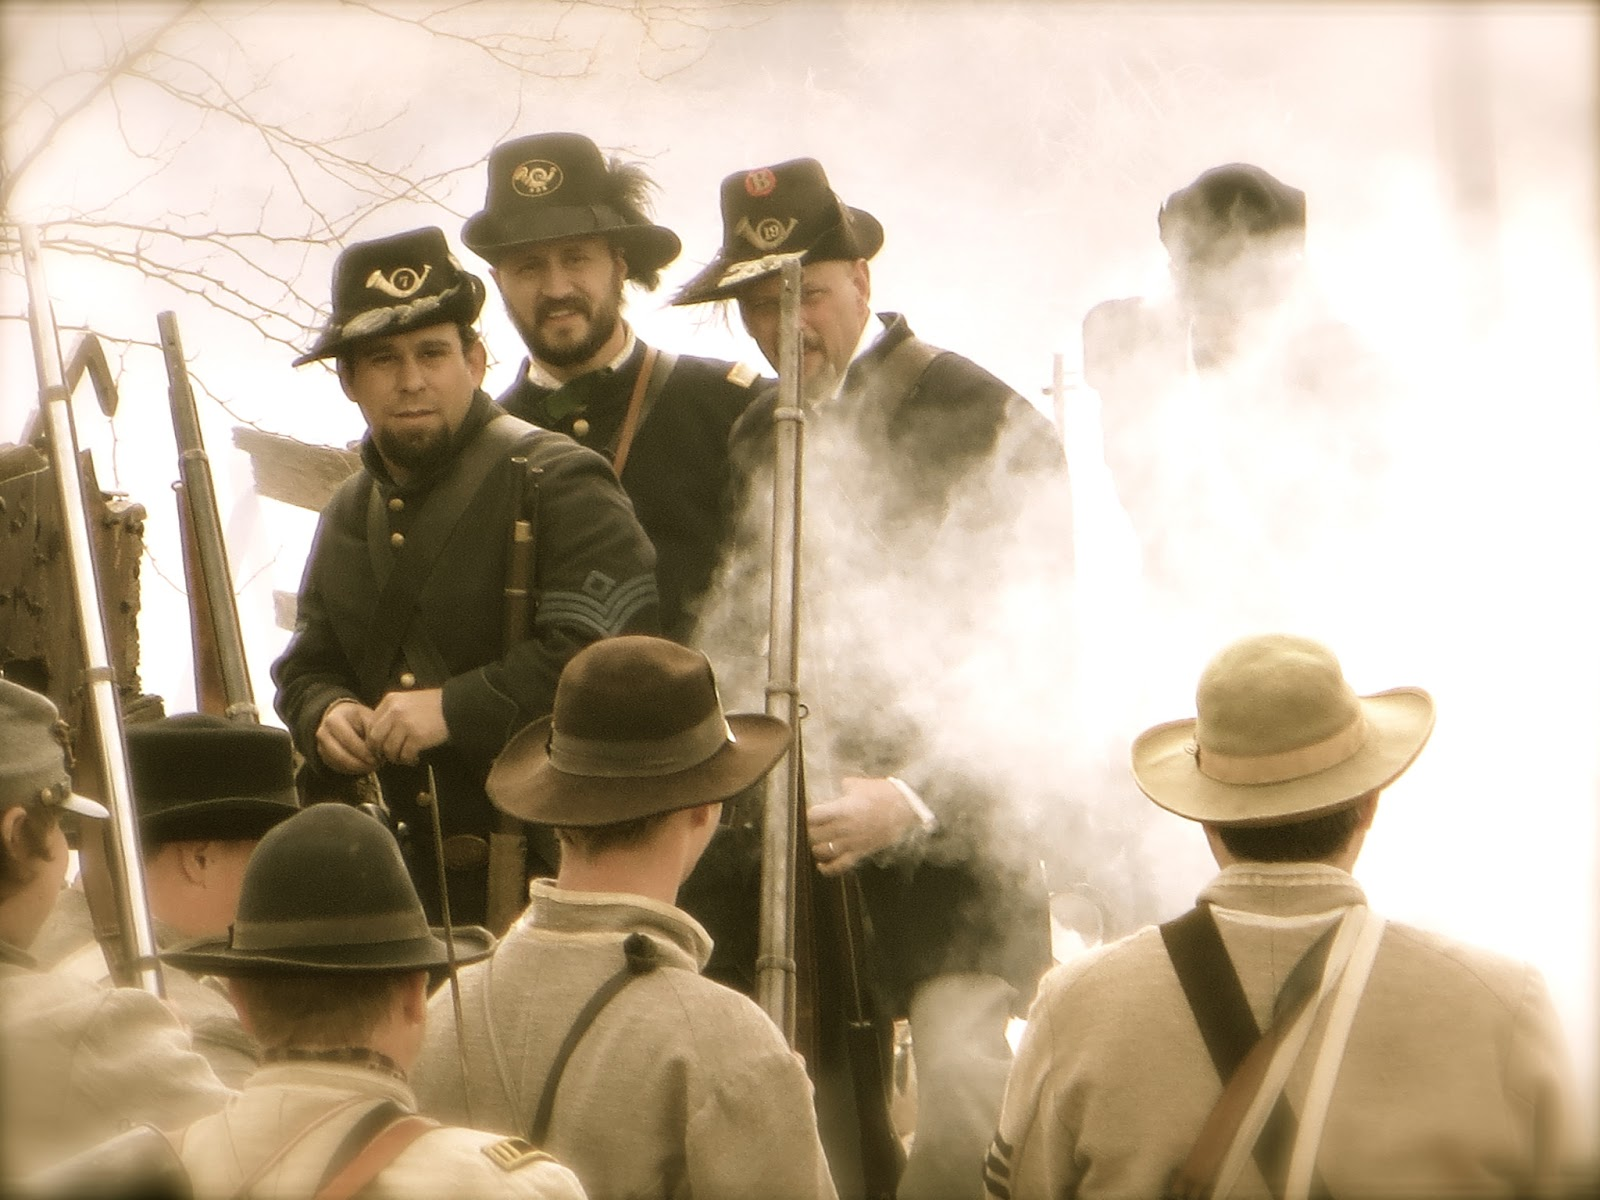 a great book study the red badge of courage a coming of age story calico ghost town ca 2013 civil war re enactment